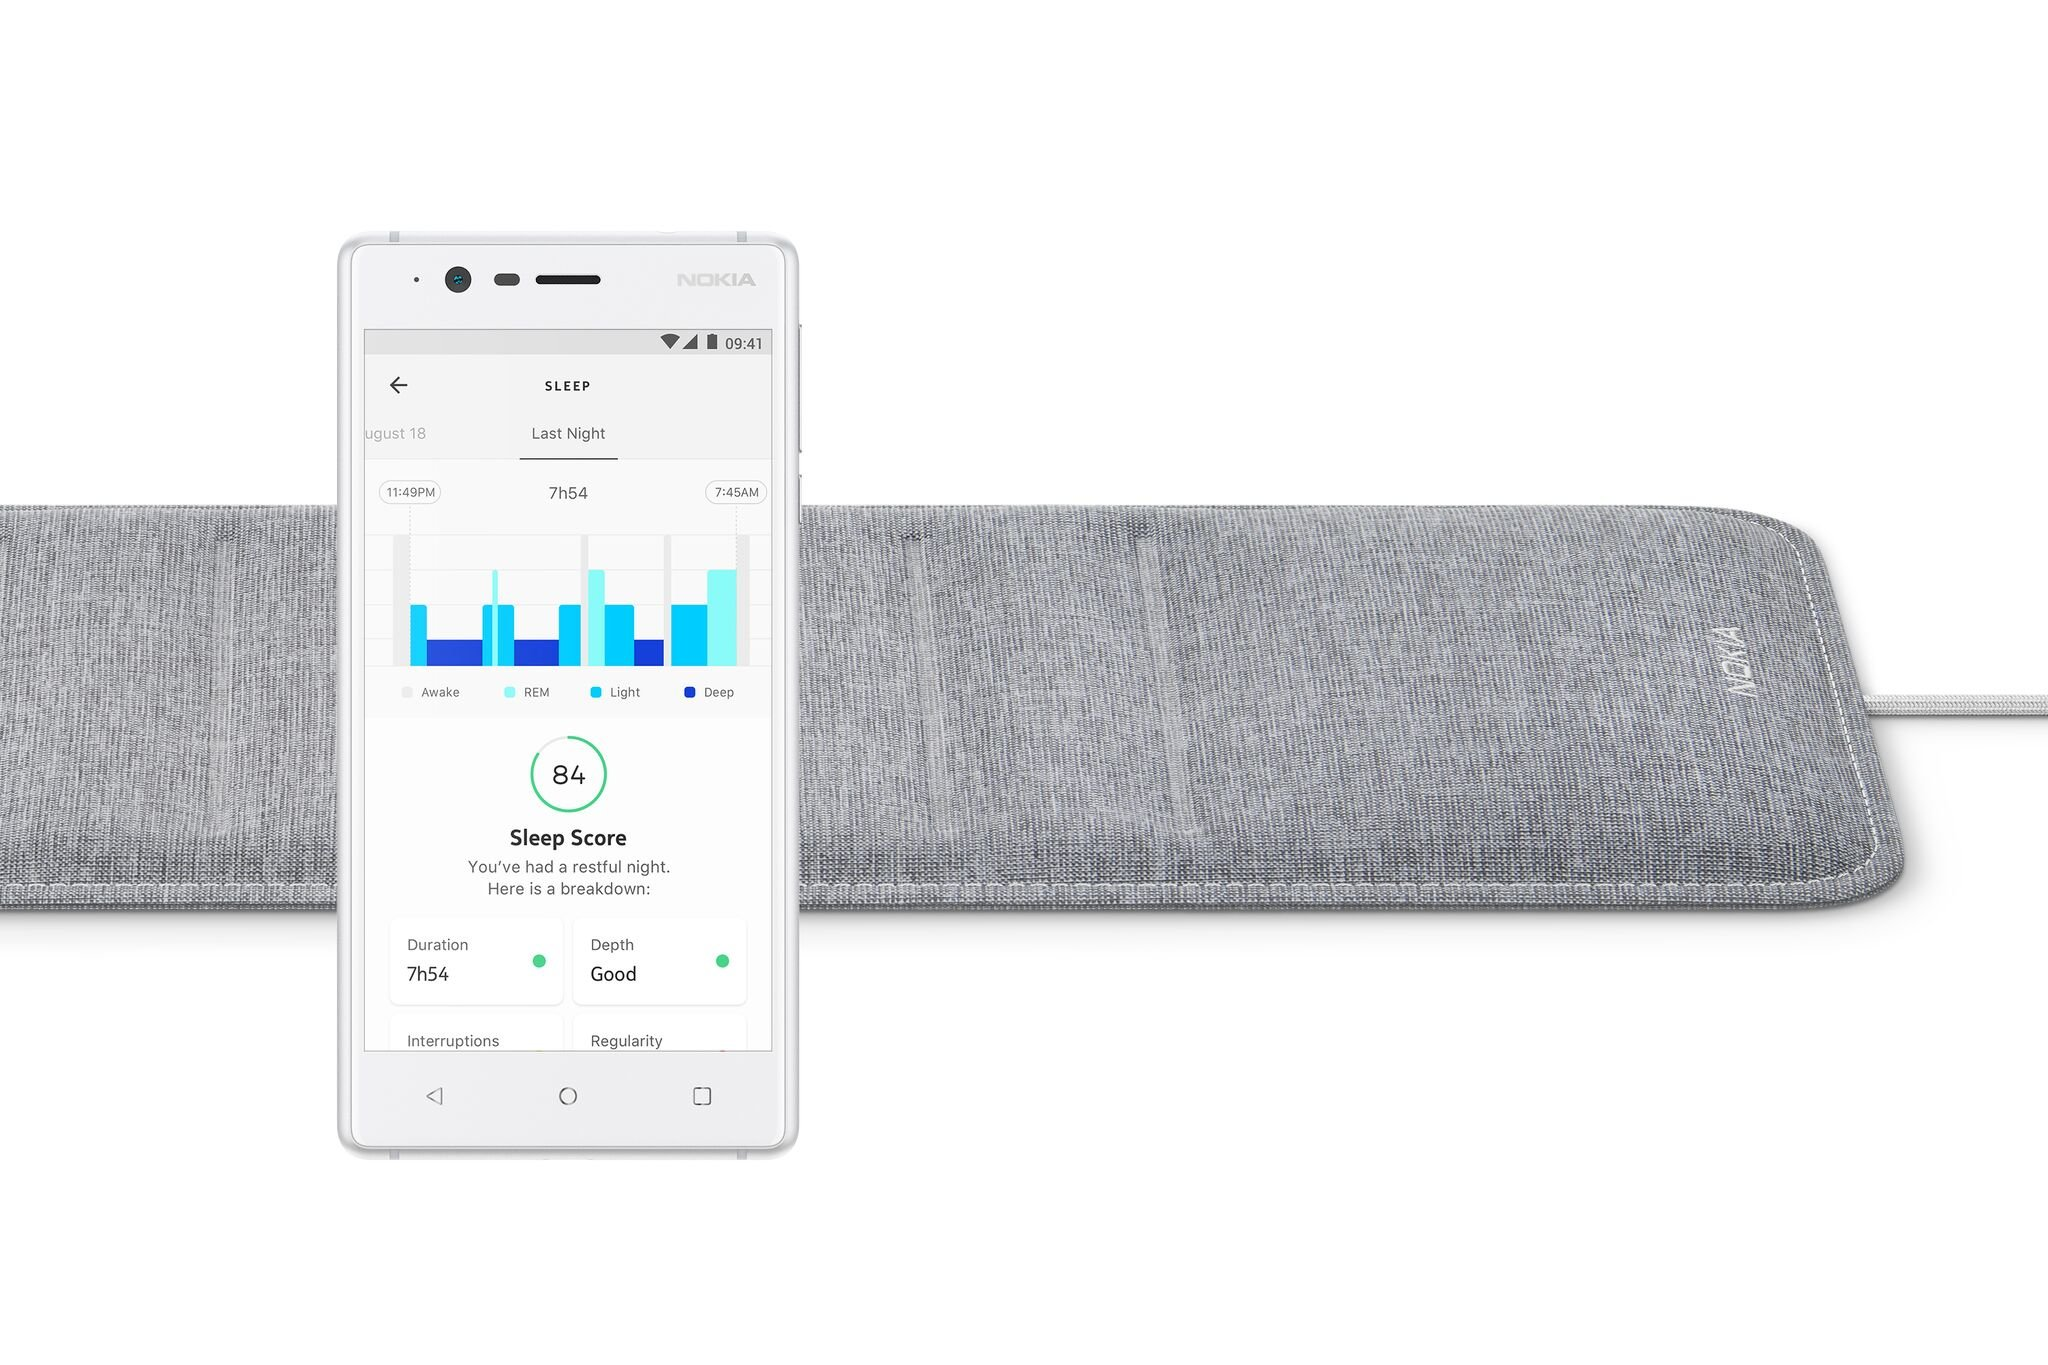 Nokia Sleep - Sleep Tracking Pads, Under The Mattress, with Sleep Sensor to Control Light, Music and Room Temperature, Compatible with Amazon Alexa Echo/IFTTT